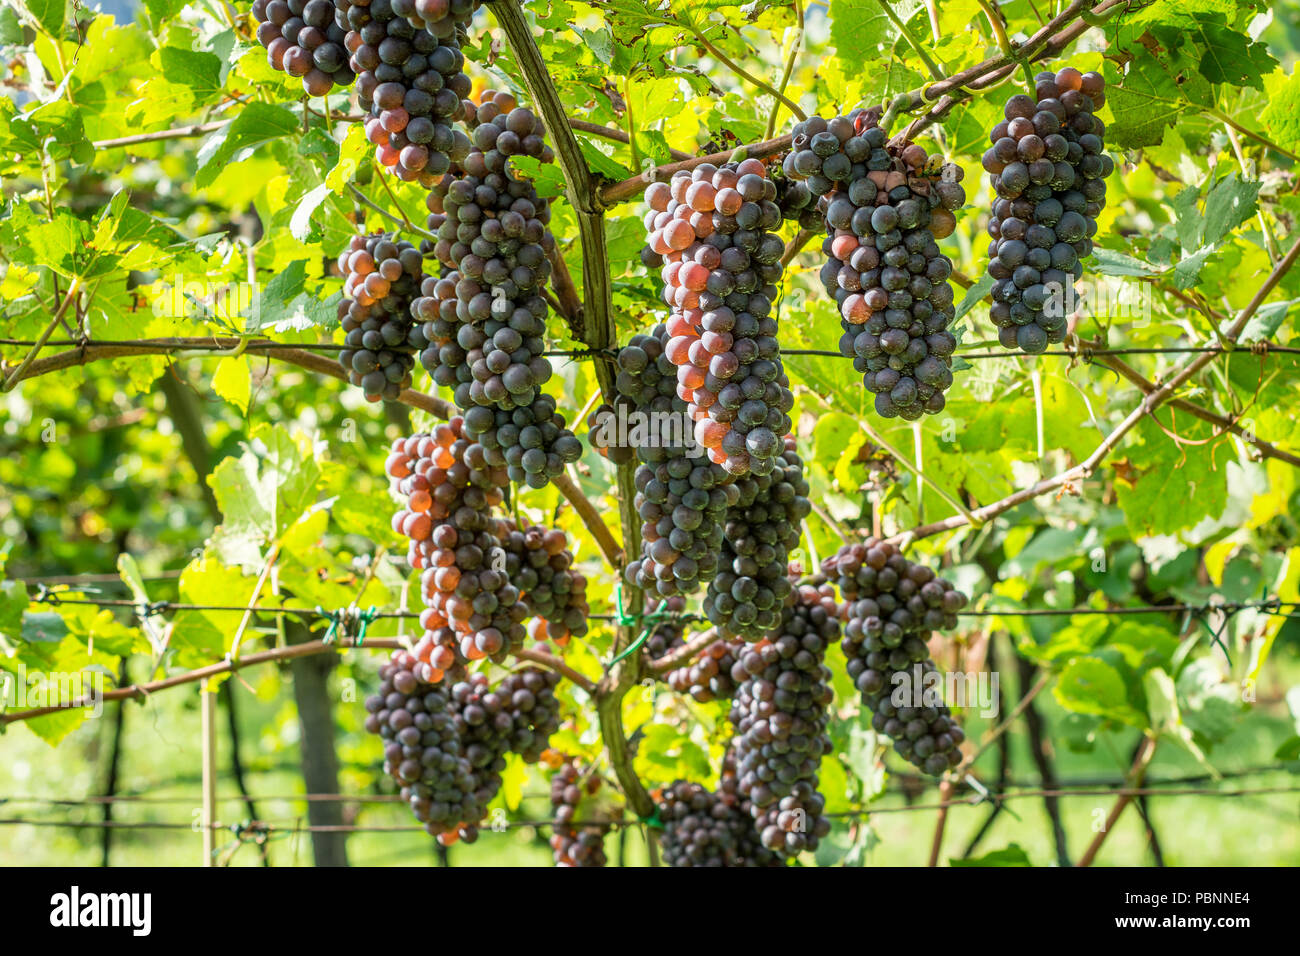 Pinot Grigio grape variety. Pinot Grigio is a white wine grape variety that is made from grapes with grayish, white red, and or purple skins. South ty - Stock Image